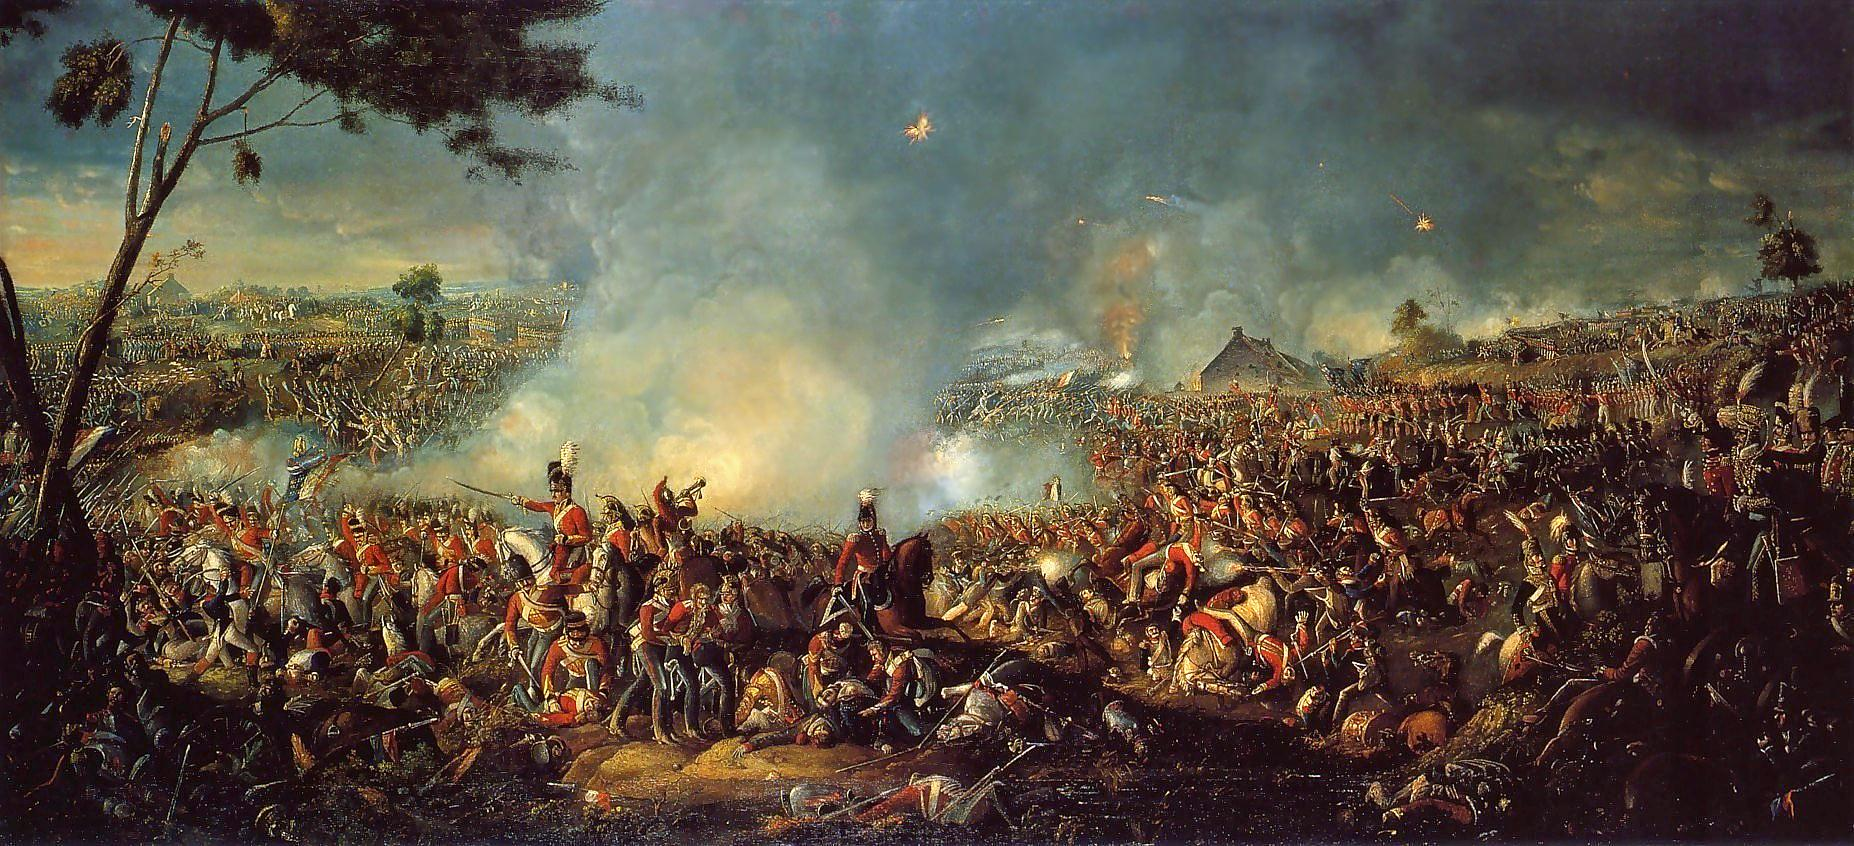 Loughborough-RollofHonour.com - The Battle of Waterloo 1815